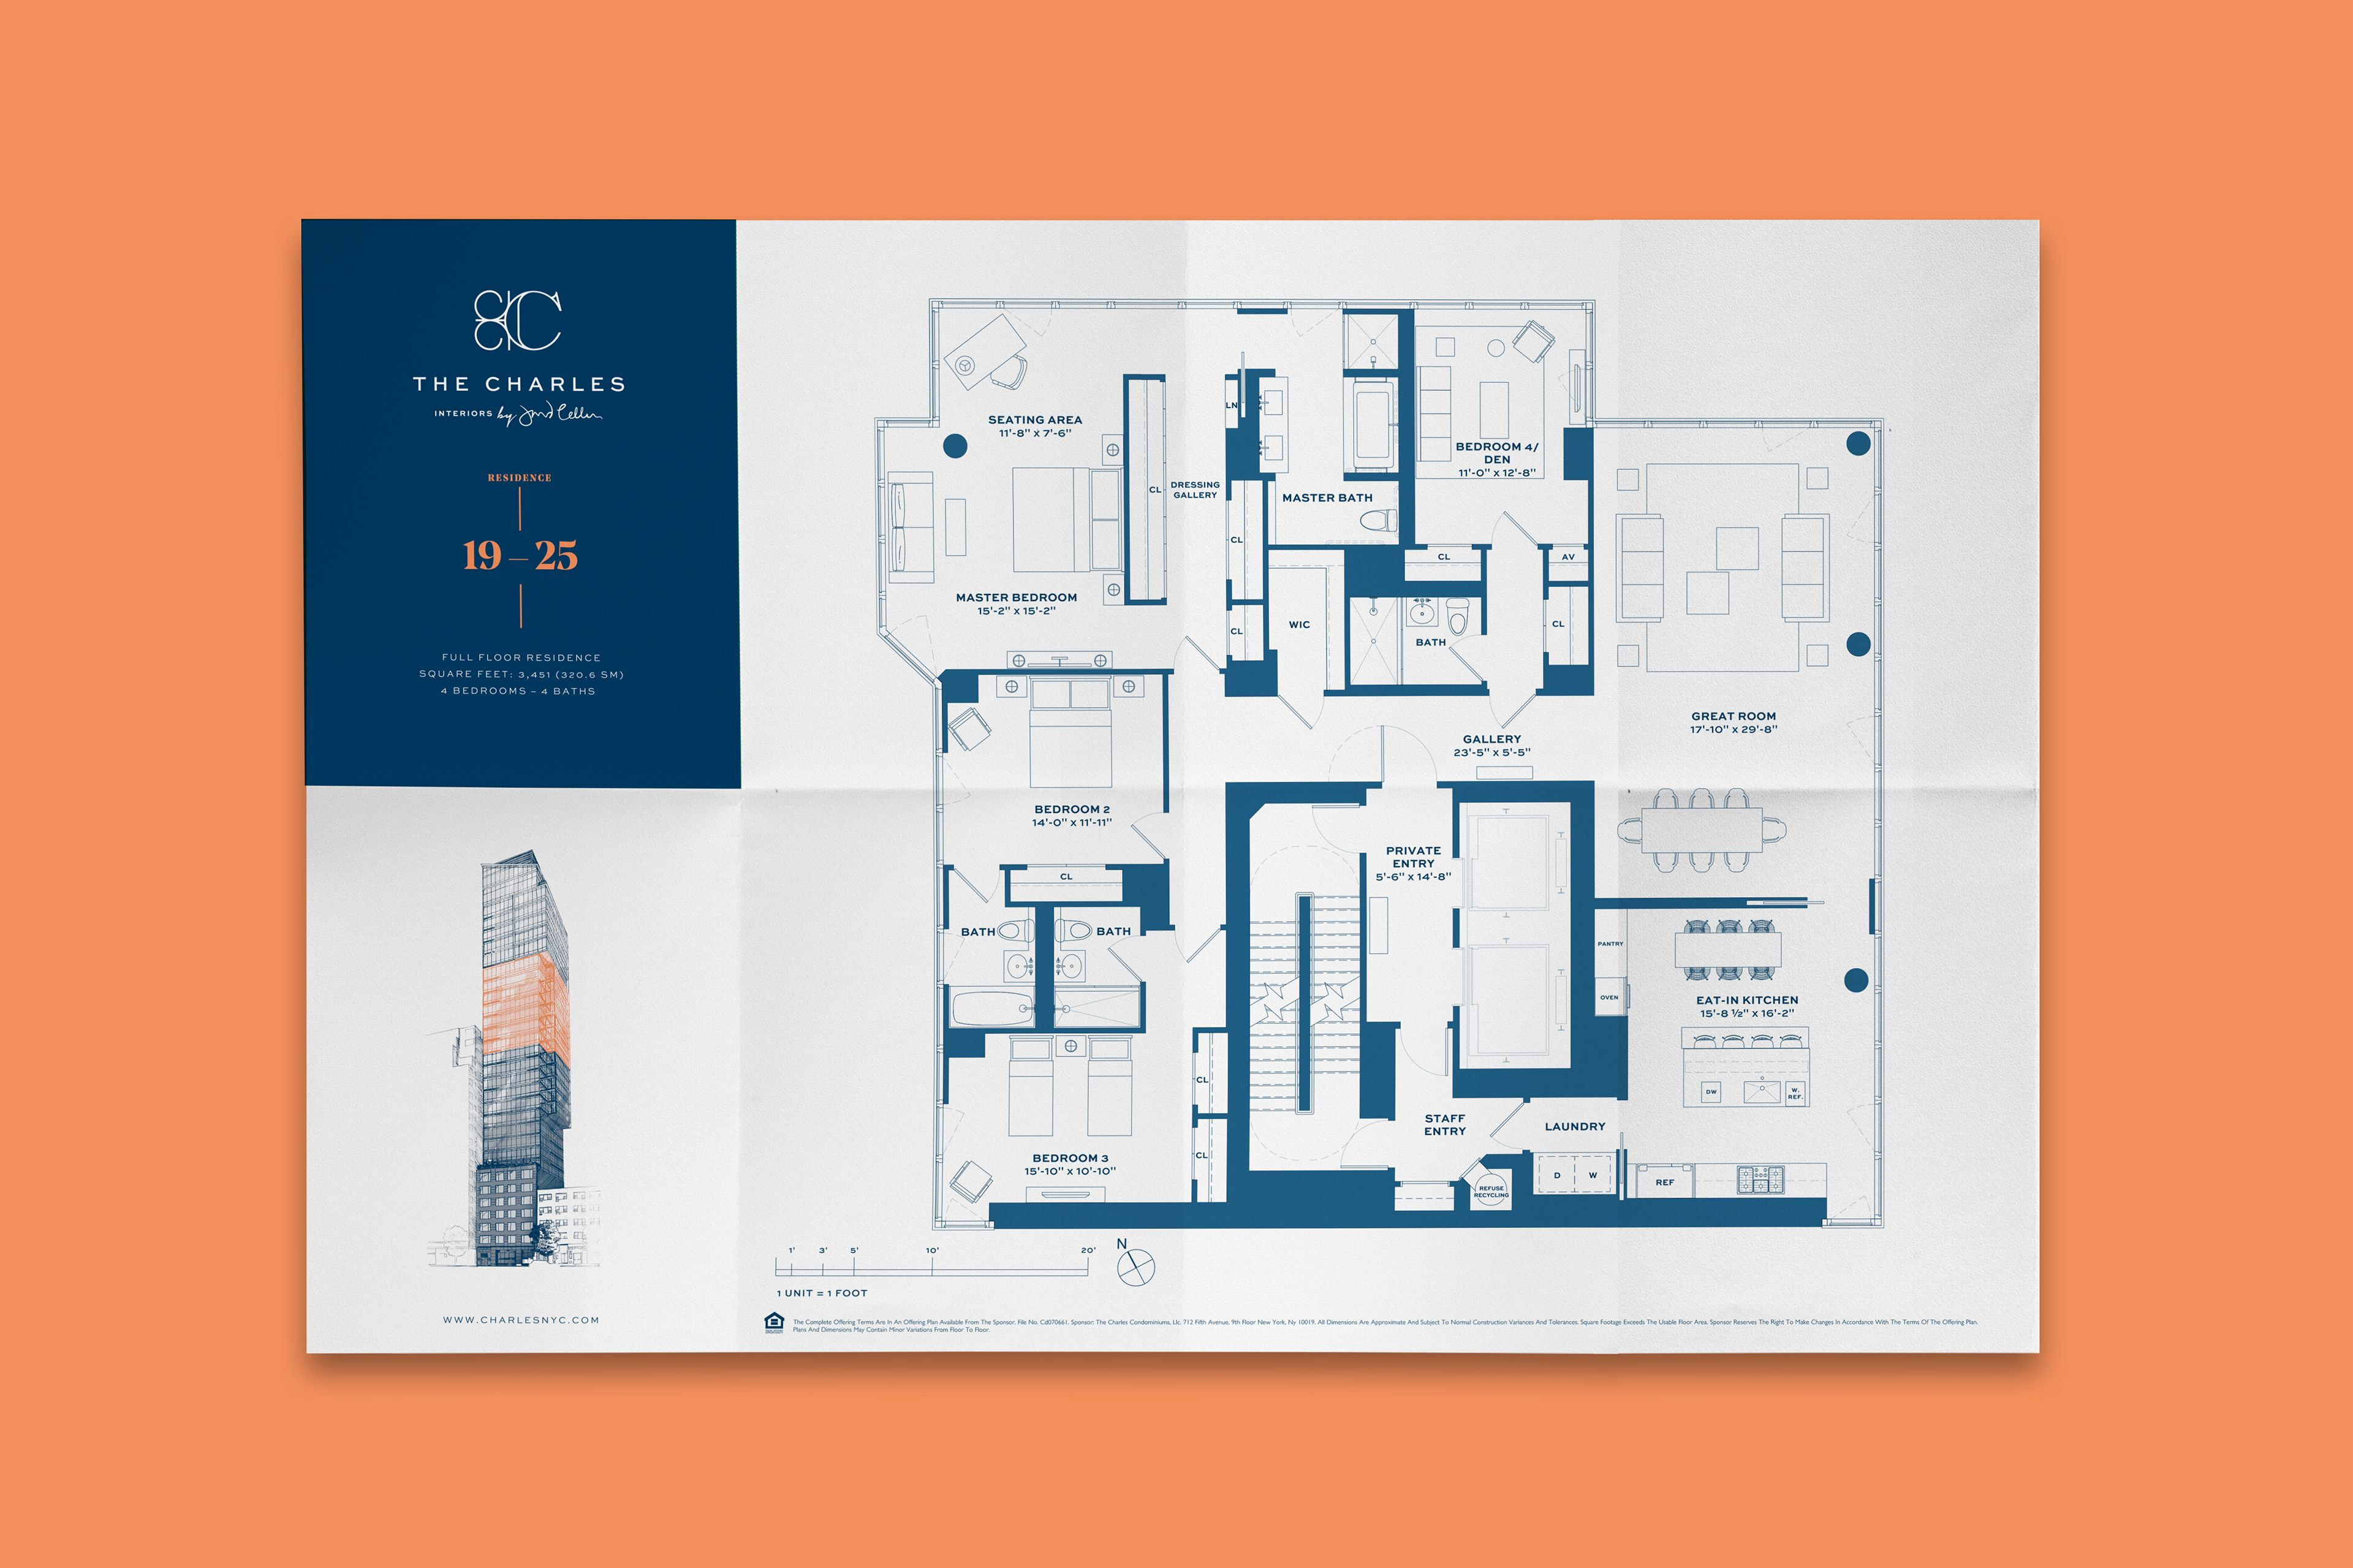 The Charles Architecture Drawing Presentation Floor Plan Design